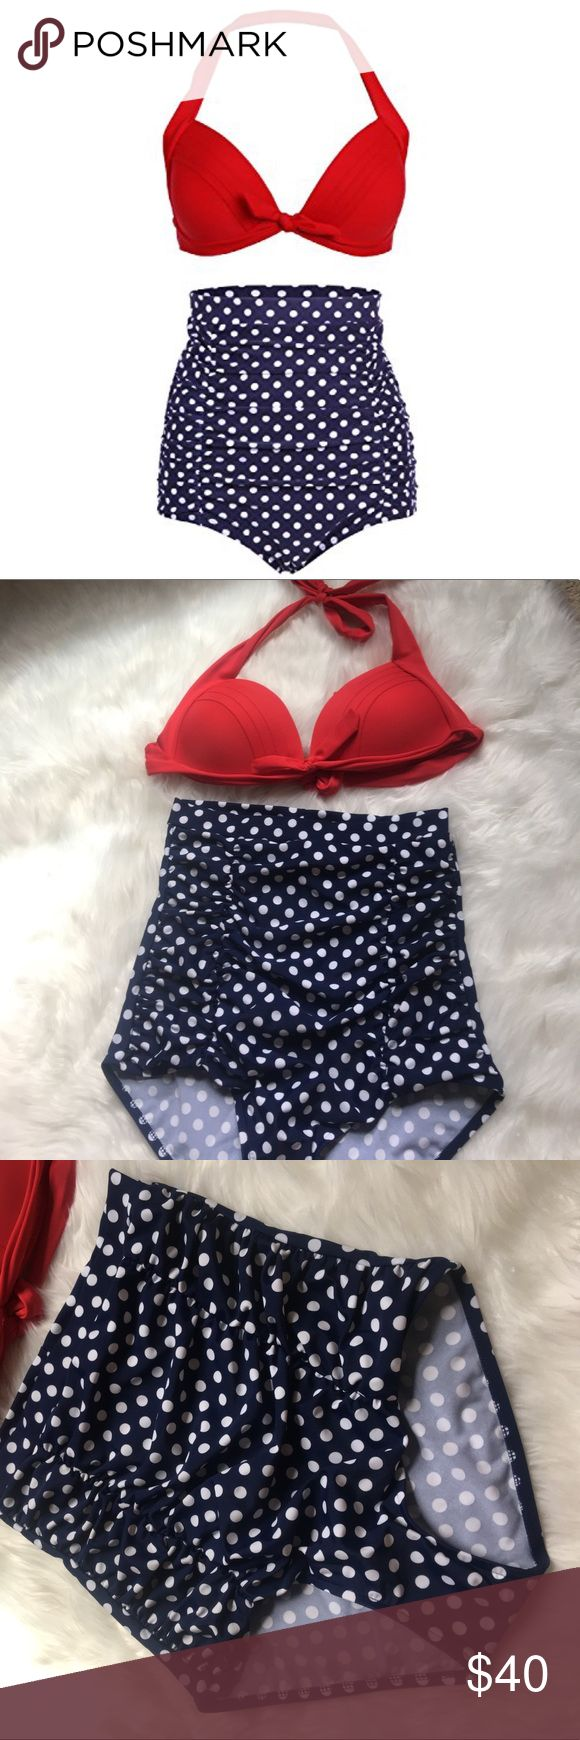 Cocoship Retro Red High Waisted Polka Dot Swimsuit Great condition, NWOT, slightly push-up, 20% off bundles, open to offers Cocoship Swim Bikinis